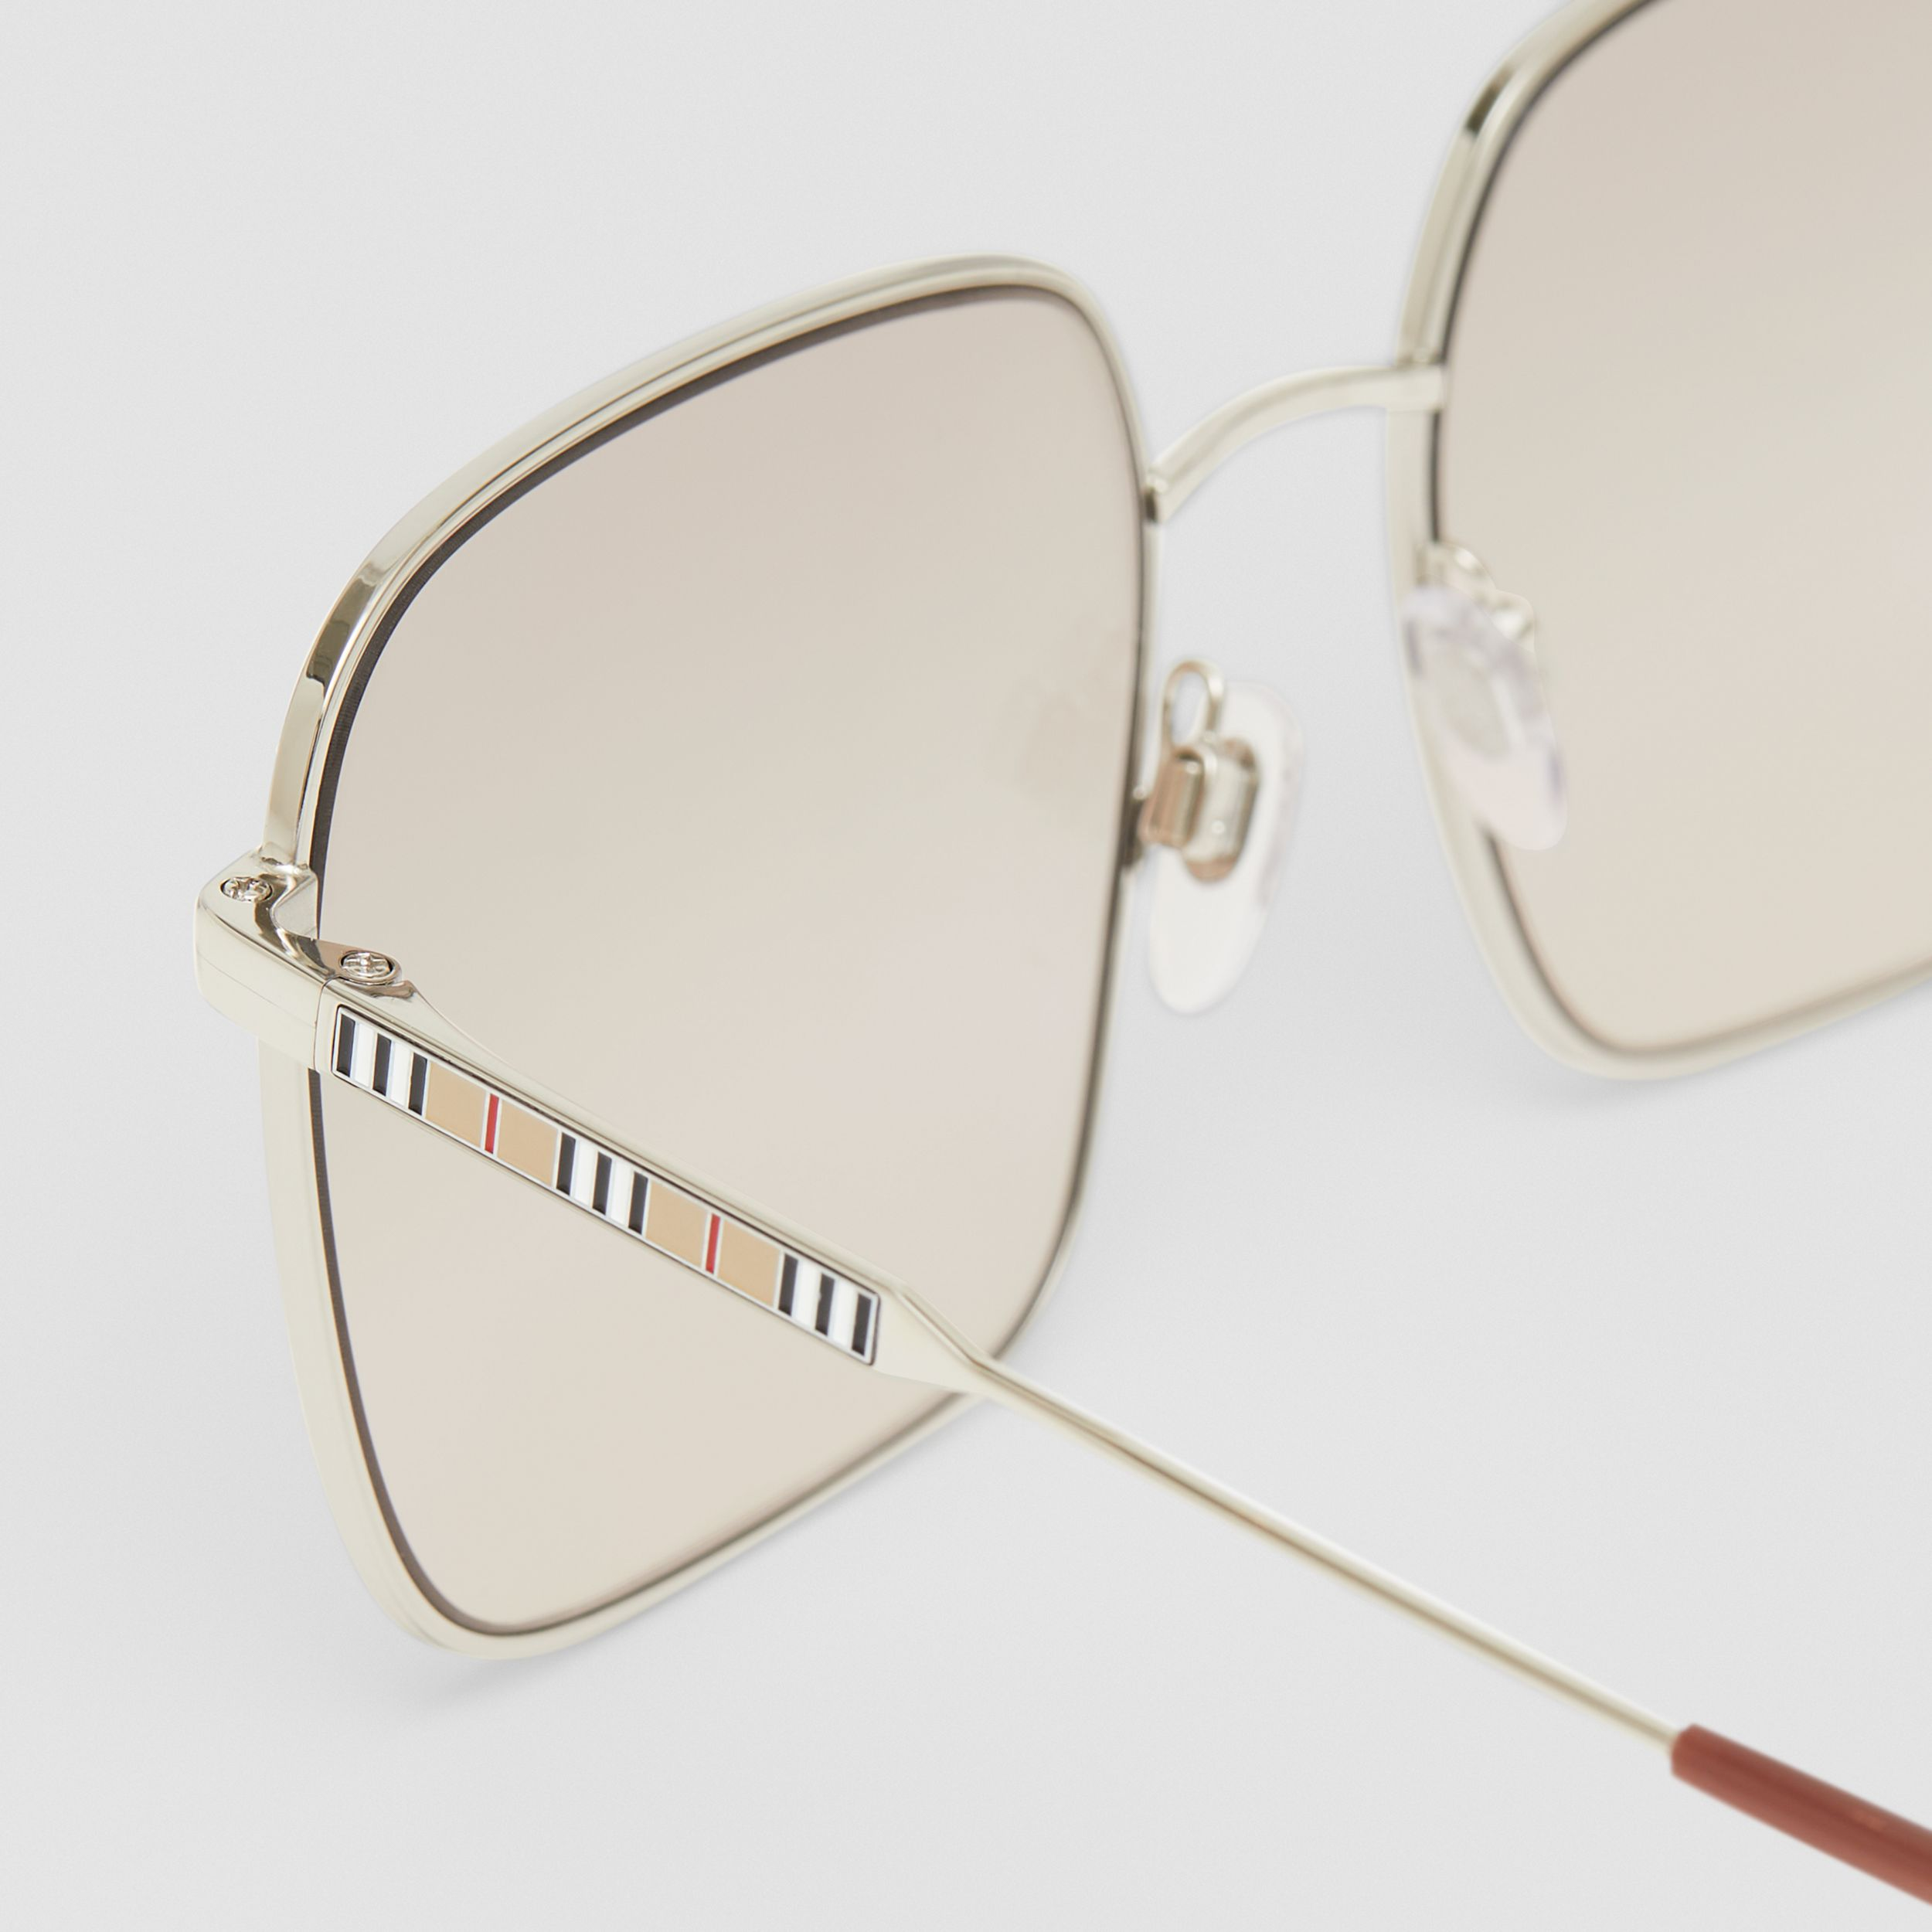 Oversized Square Frame Sunglasses in Nude Pink - Women | Burberry - 2